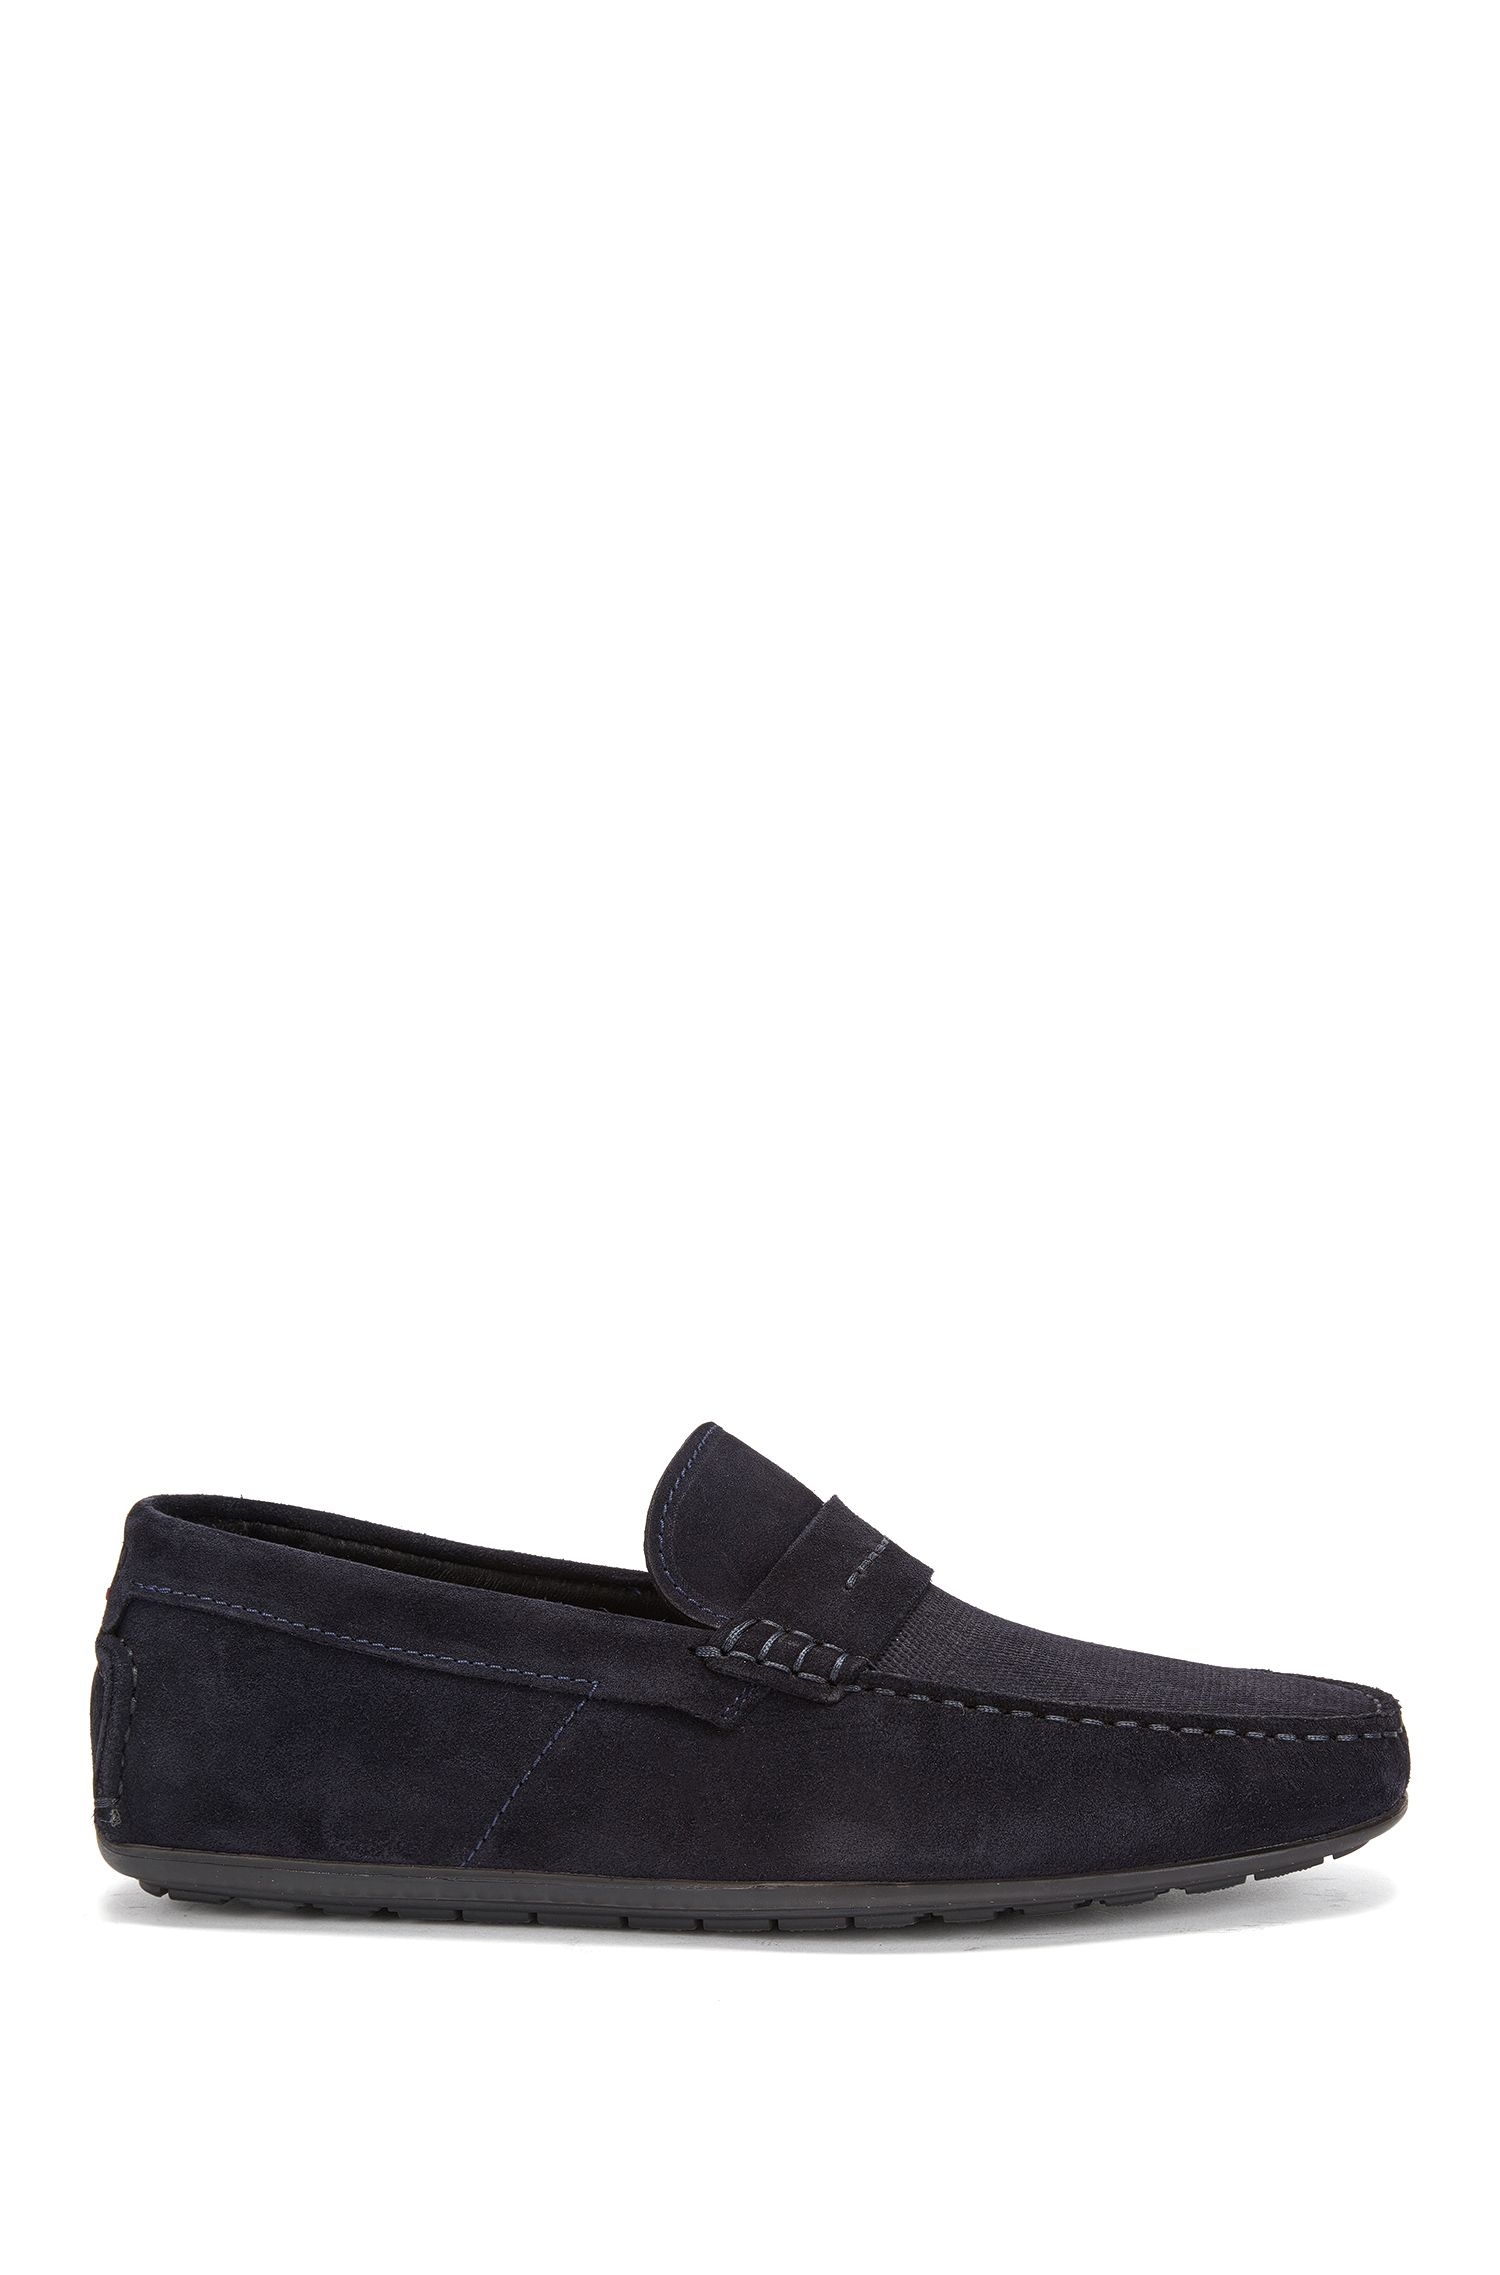 Suede Driving Loafer | Dandy Mocc Plpr